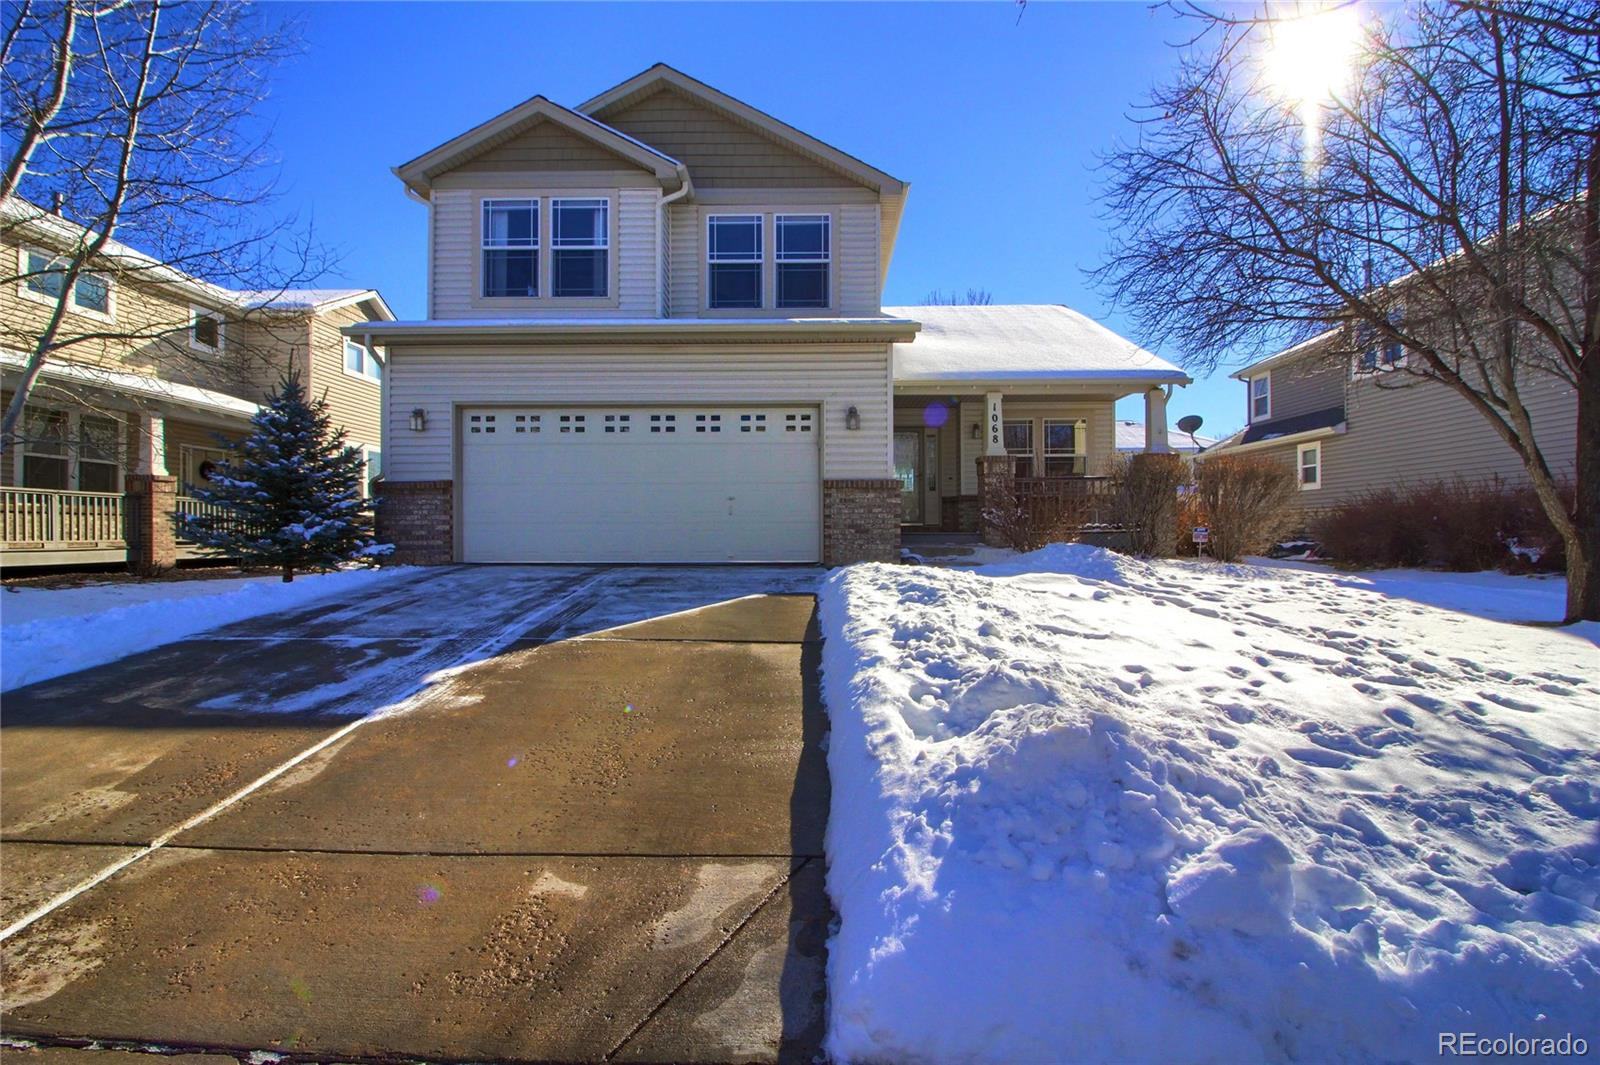 MLS# 3161208 - 1 - 1068 W 135th Court, Westminster, CO 80234